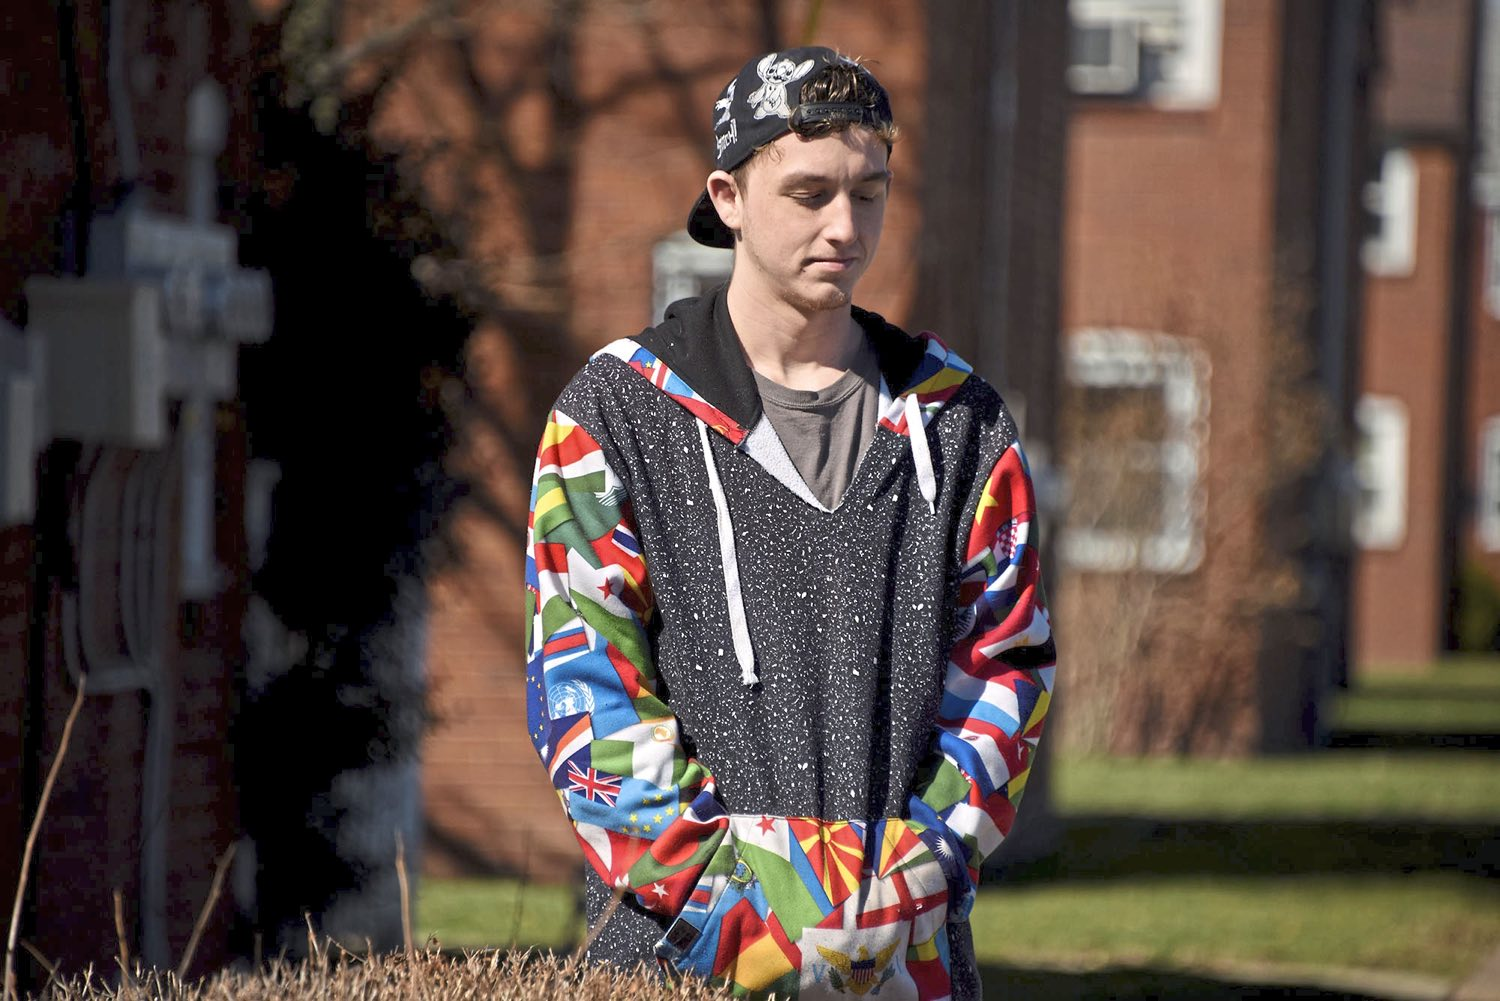 Carlynton class of 2017 graduate Patrick Zekler, of Neville Island, pauses as he talks about his uncle's overdose death while wearing his uncle's colorful hoodie, decorated with a pattern of flags, Monday March 5, 2018, in Neville Island. (Darrell Sapp/Post-Gazette)